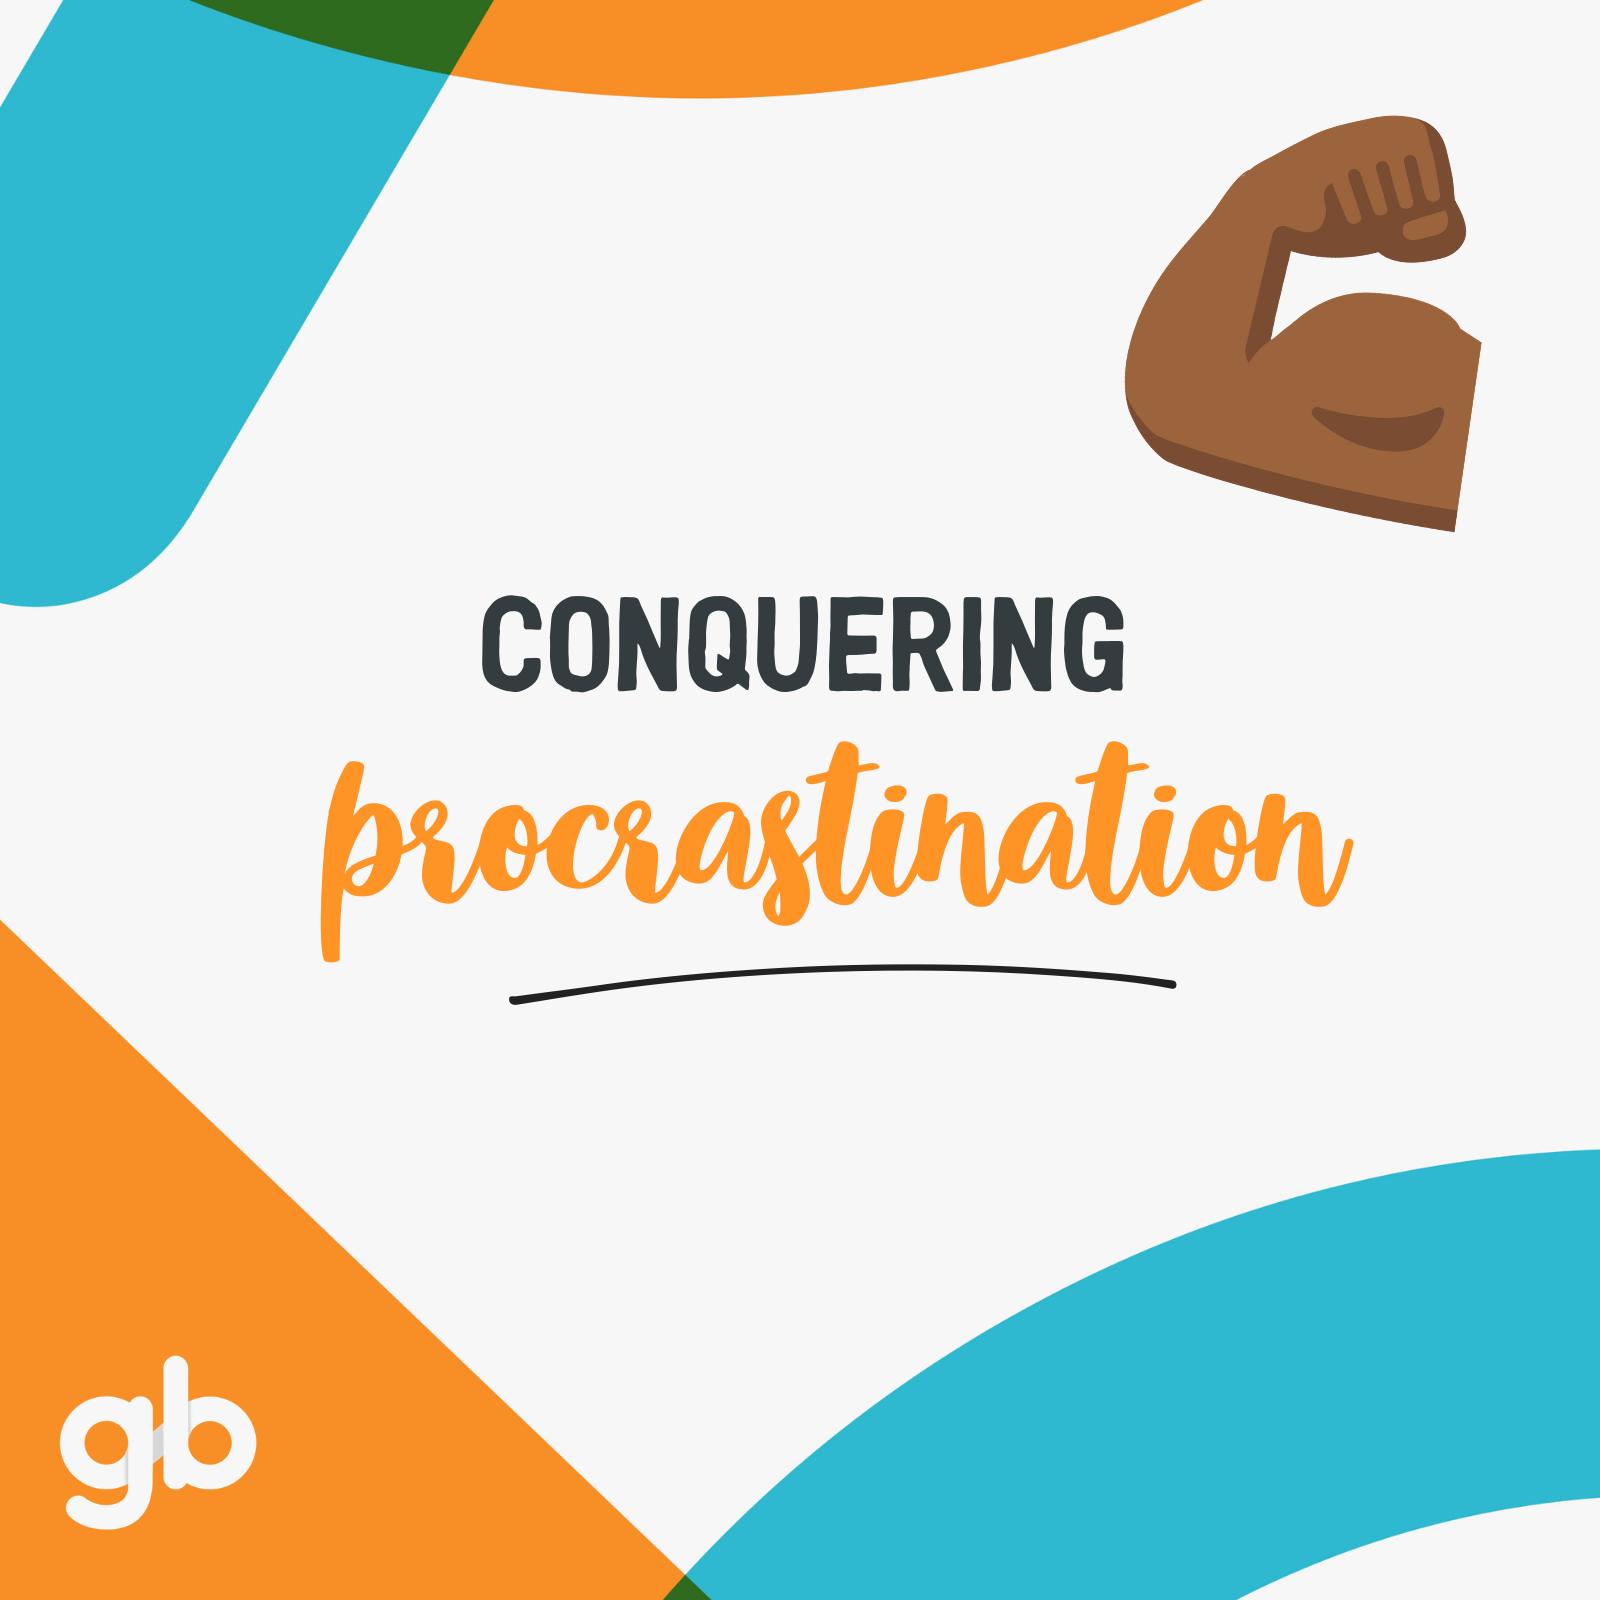 #13. Nearly all freelancers have been bitten by the procrastination bug at some point in their career. If procrastination is taking its toll on your success and productivity, here are seven tried-and-tested tips to get a hold of your procrastination before it gets a hold of you! -